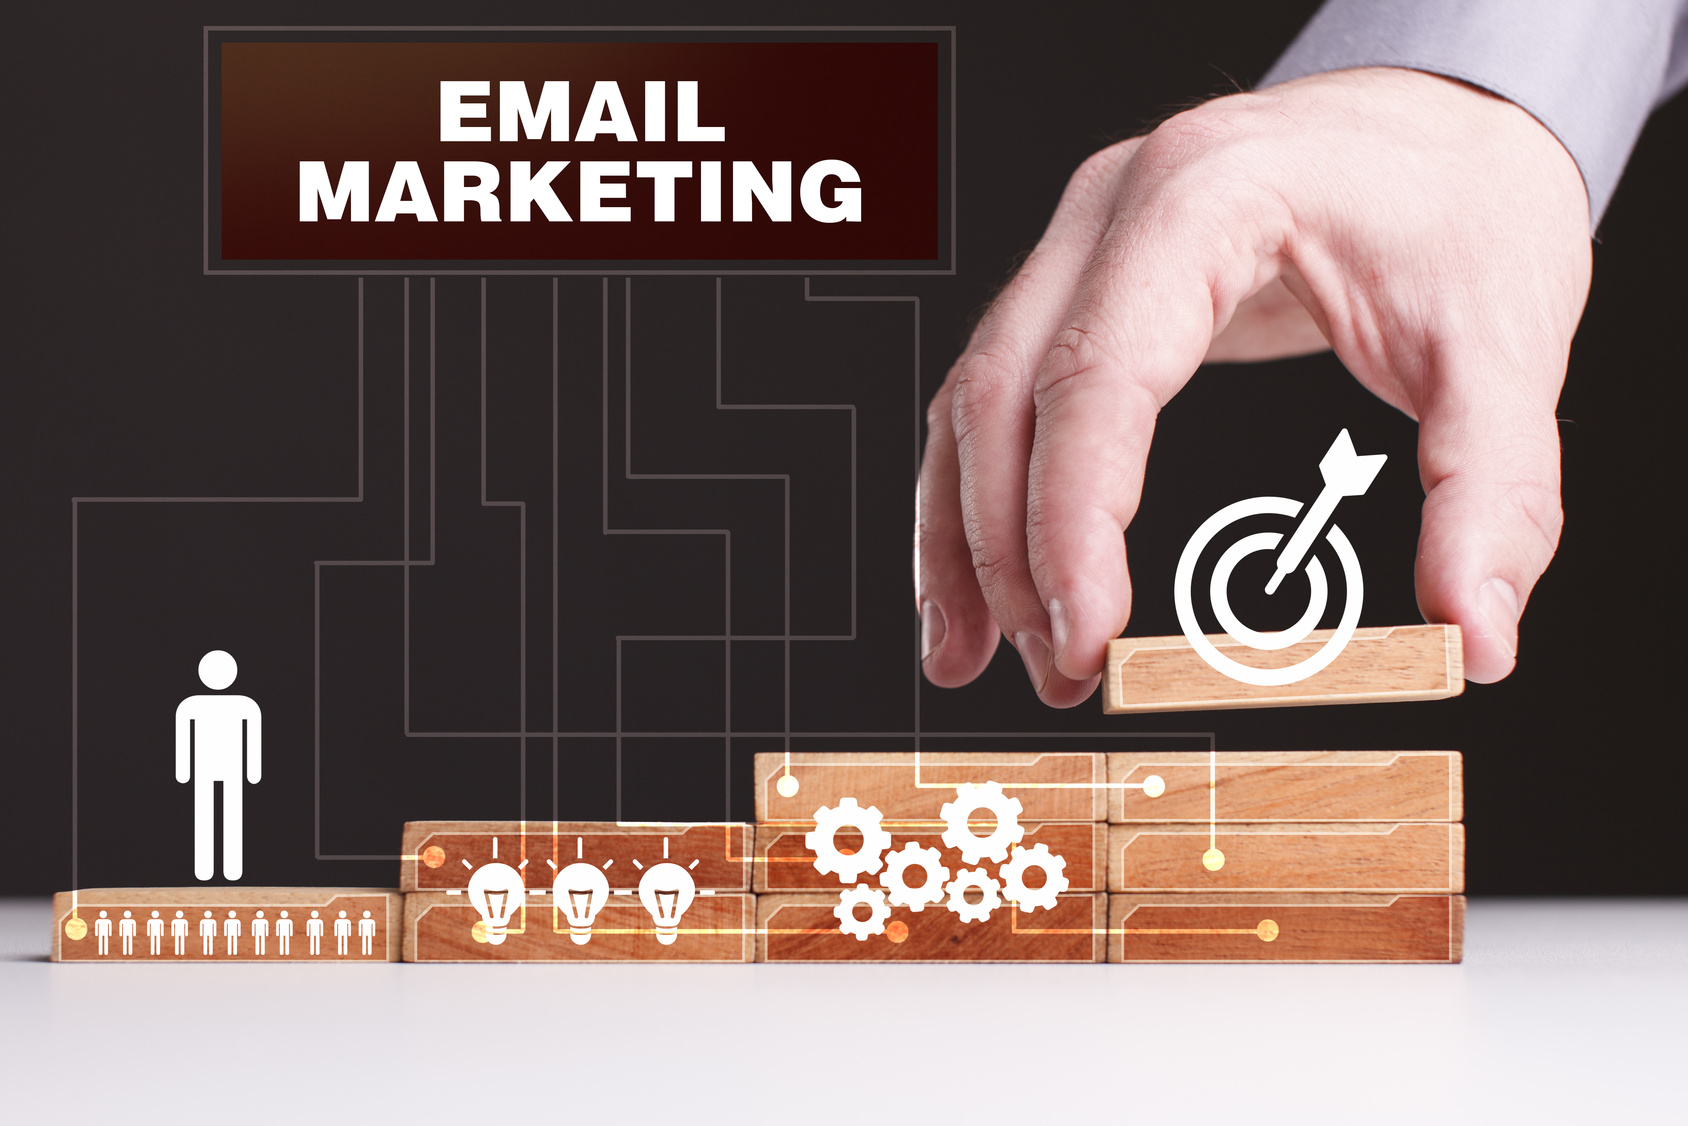 10 Email Marketing Mistakes Every Marketer Needs To Know